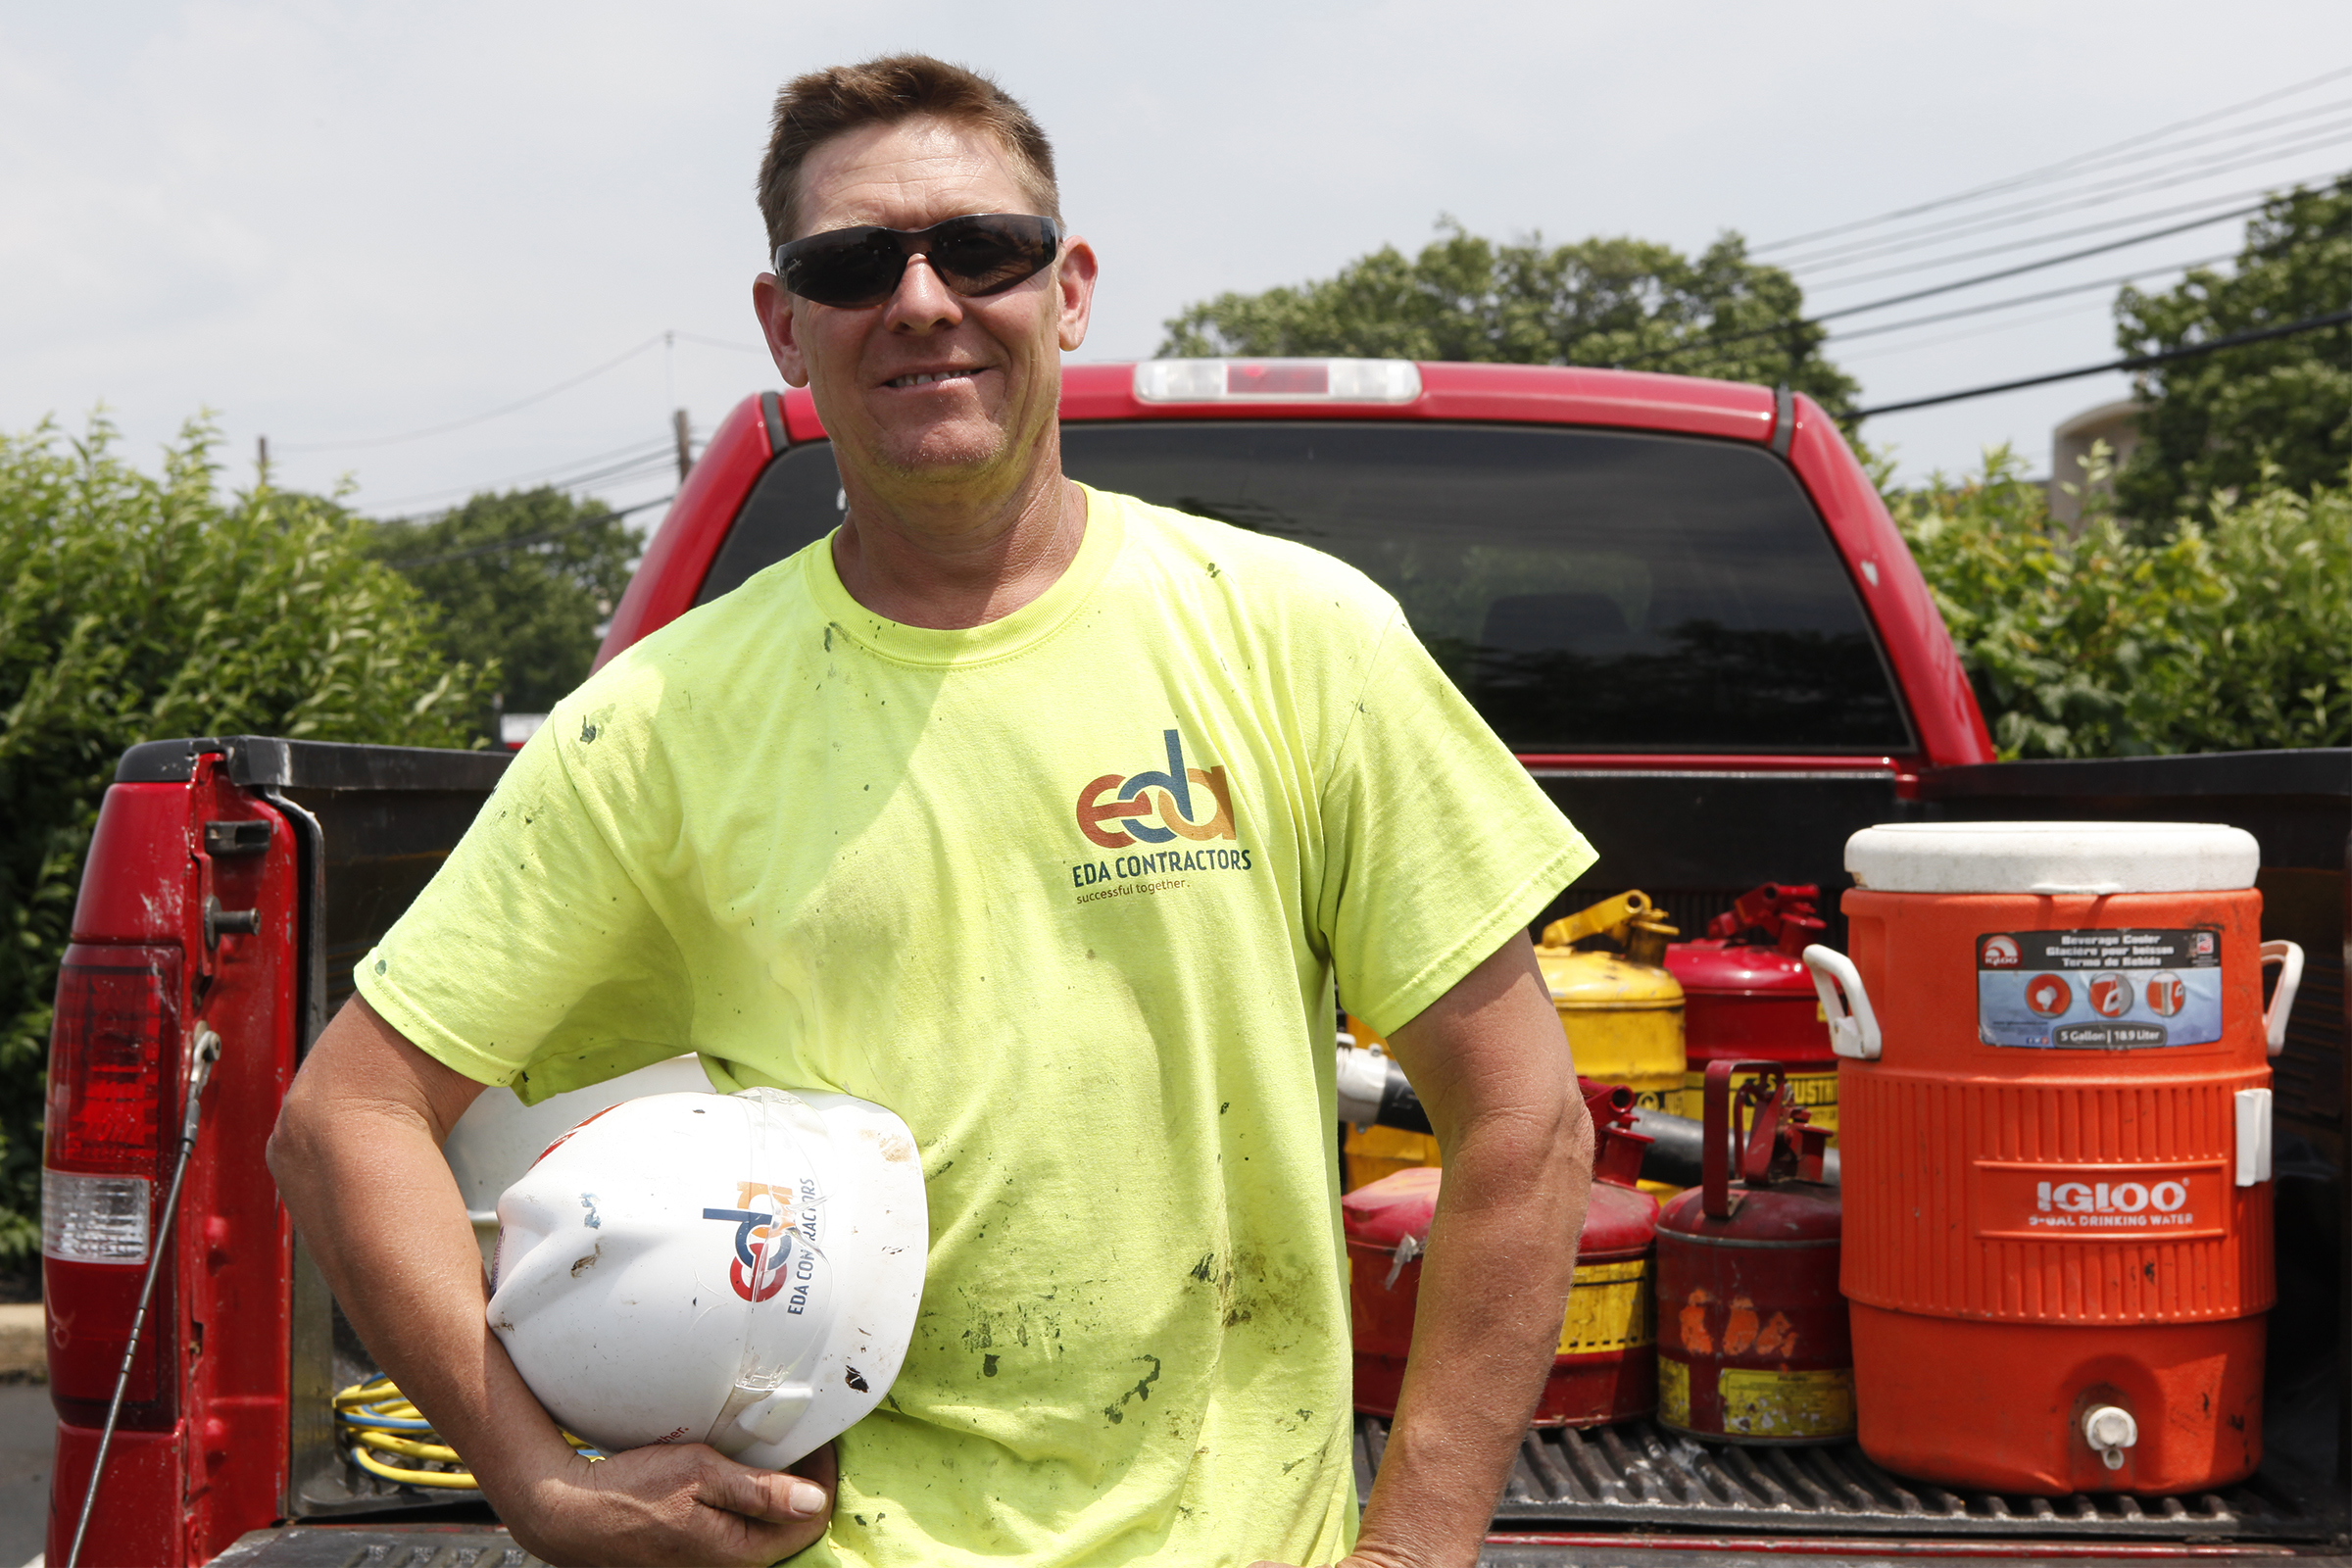 Mike Blackie, a roofer at EDA Contractors, got trained in emotional intelligence and has learned to turn his bad attitude into a positive one.